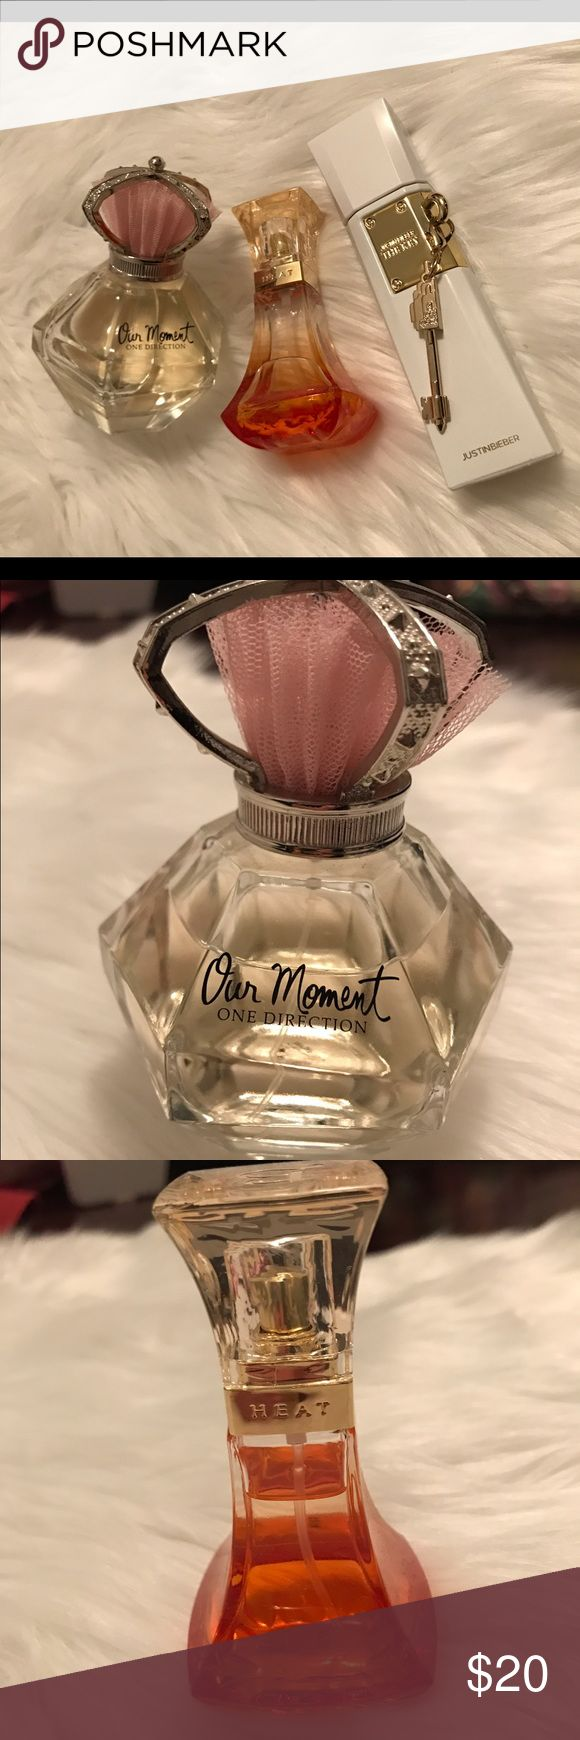 Three Celebrity Perfumes Bundle Justin Bieber The Key, Beyonce Heat Rush, One Direction Our Moment. All perfumes have barely been used with most left in bottle. You can see how much is left in Our Moment and Heat Rush. Makeup